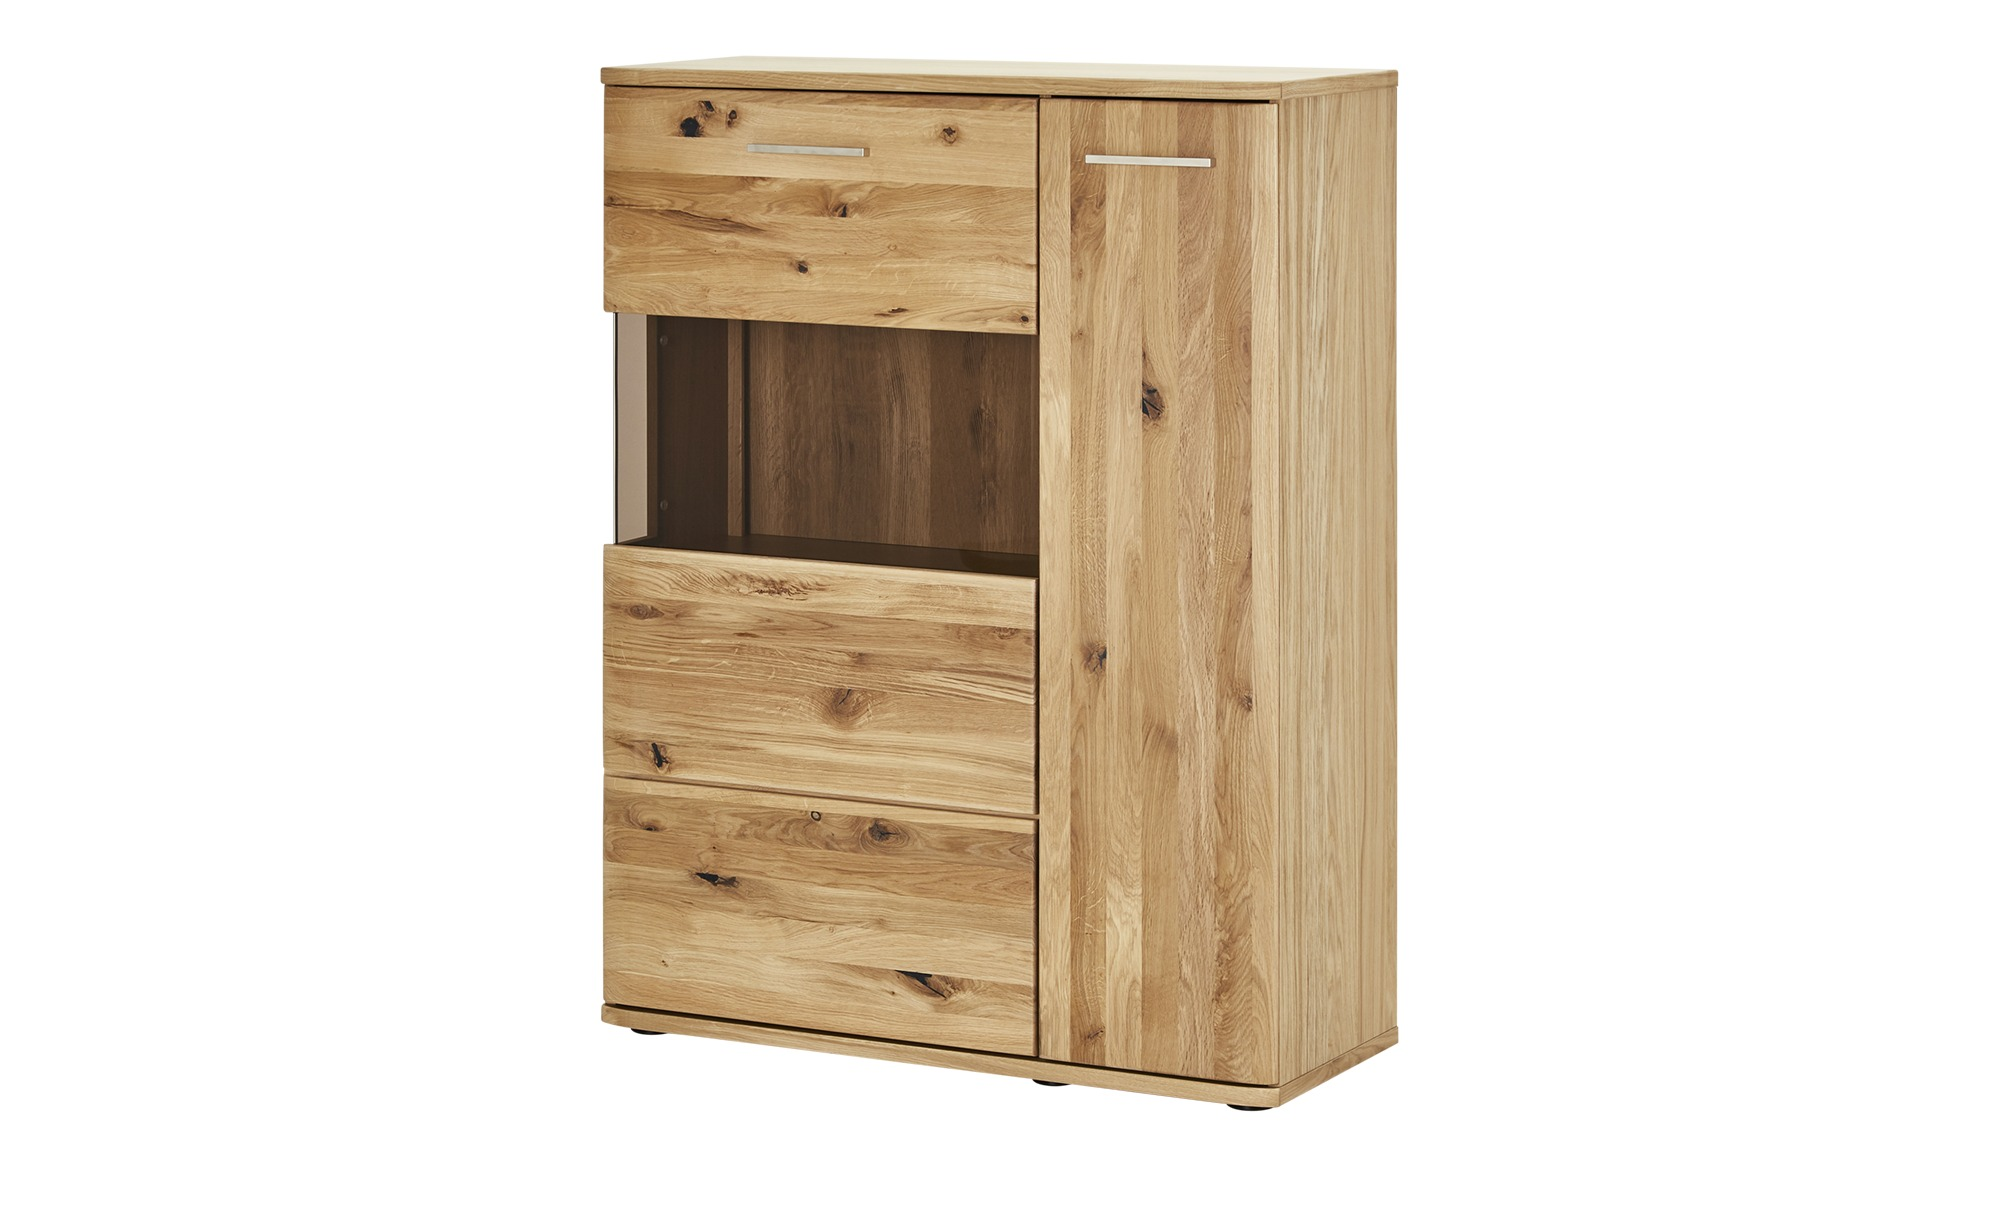 Woodford Highboard  Astoria ¦ holzfarben ¦ Maße (cm): B: 90 H: 122 T: 37 Kommoden & Sideboards > Highboards - Höffner